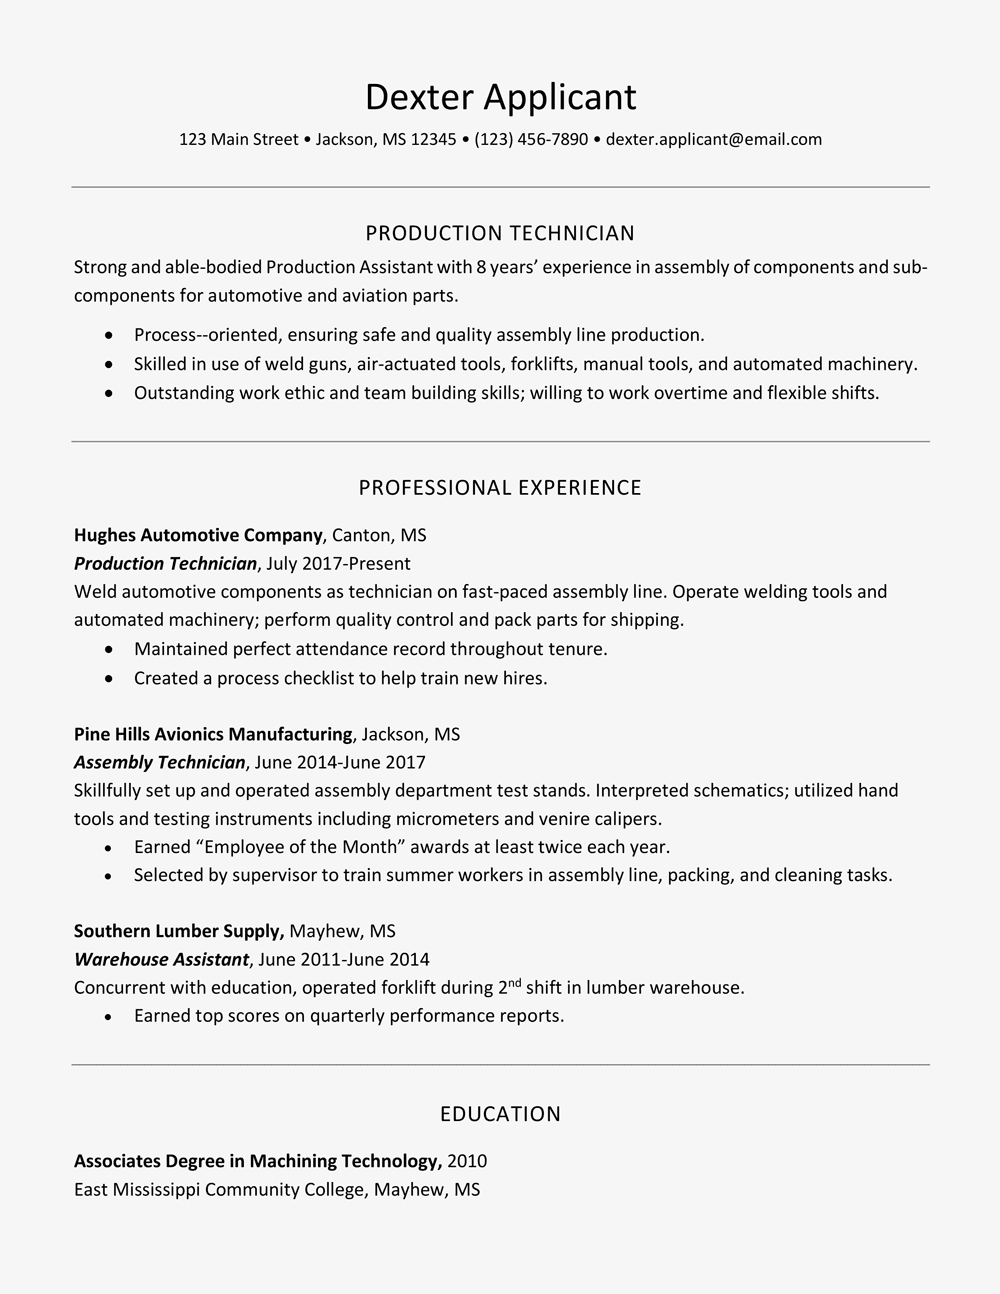 Resume Simple Get Some Guidelines For What To Include In A Resume